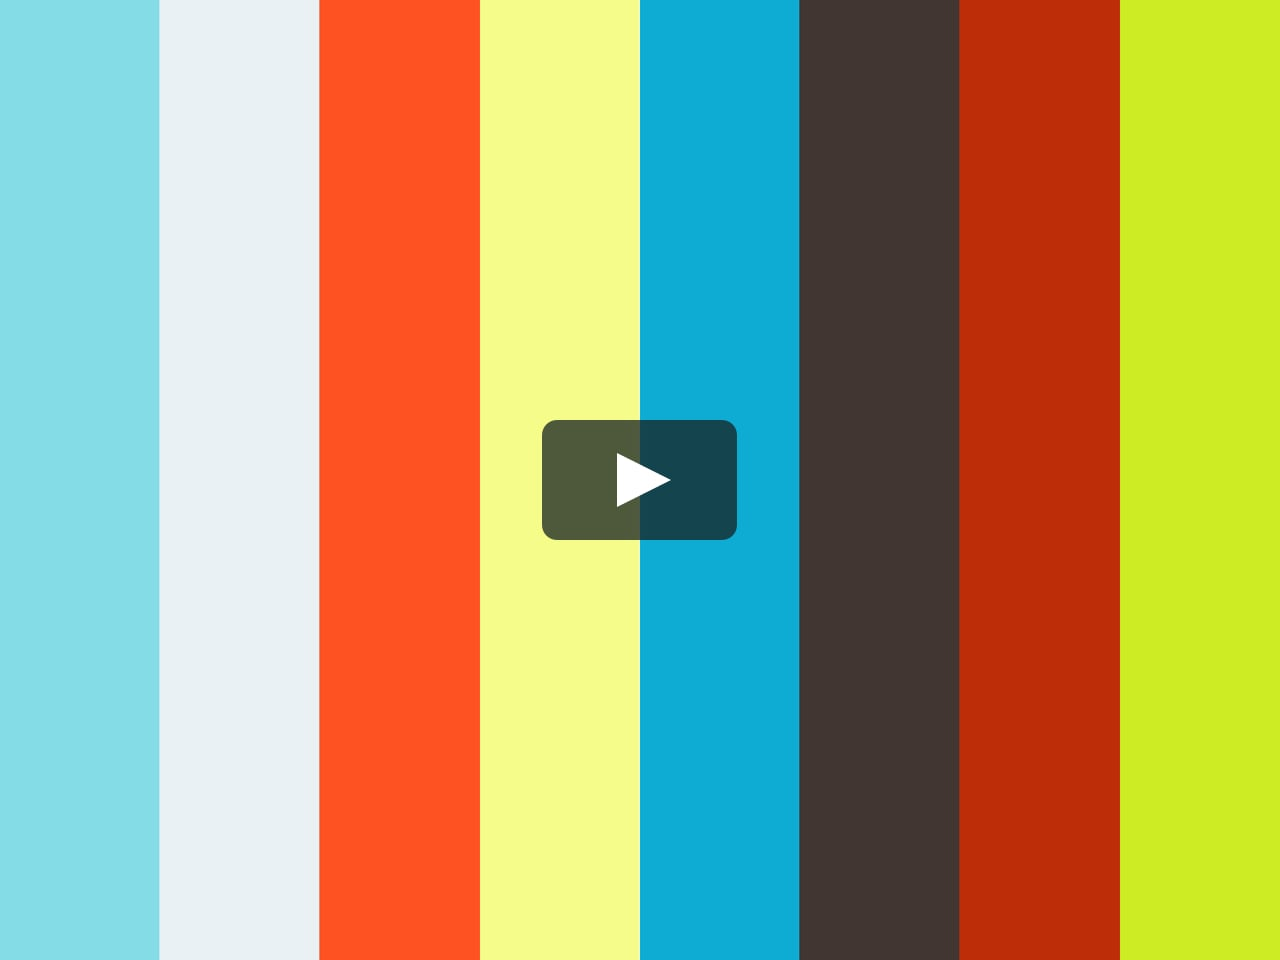 Video como instalar fibra piscinas cano c 61 on vimeo - Piscina fibra vidrio ...